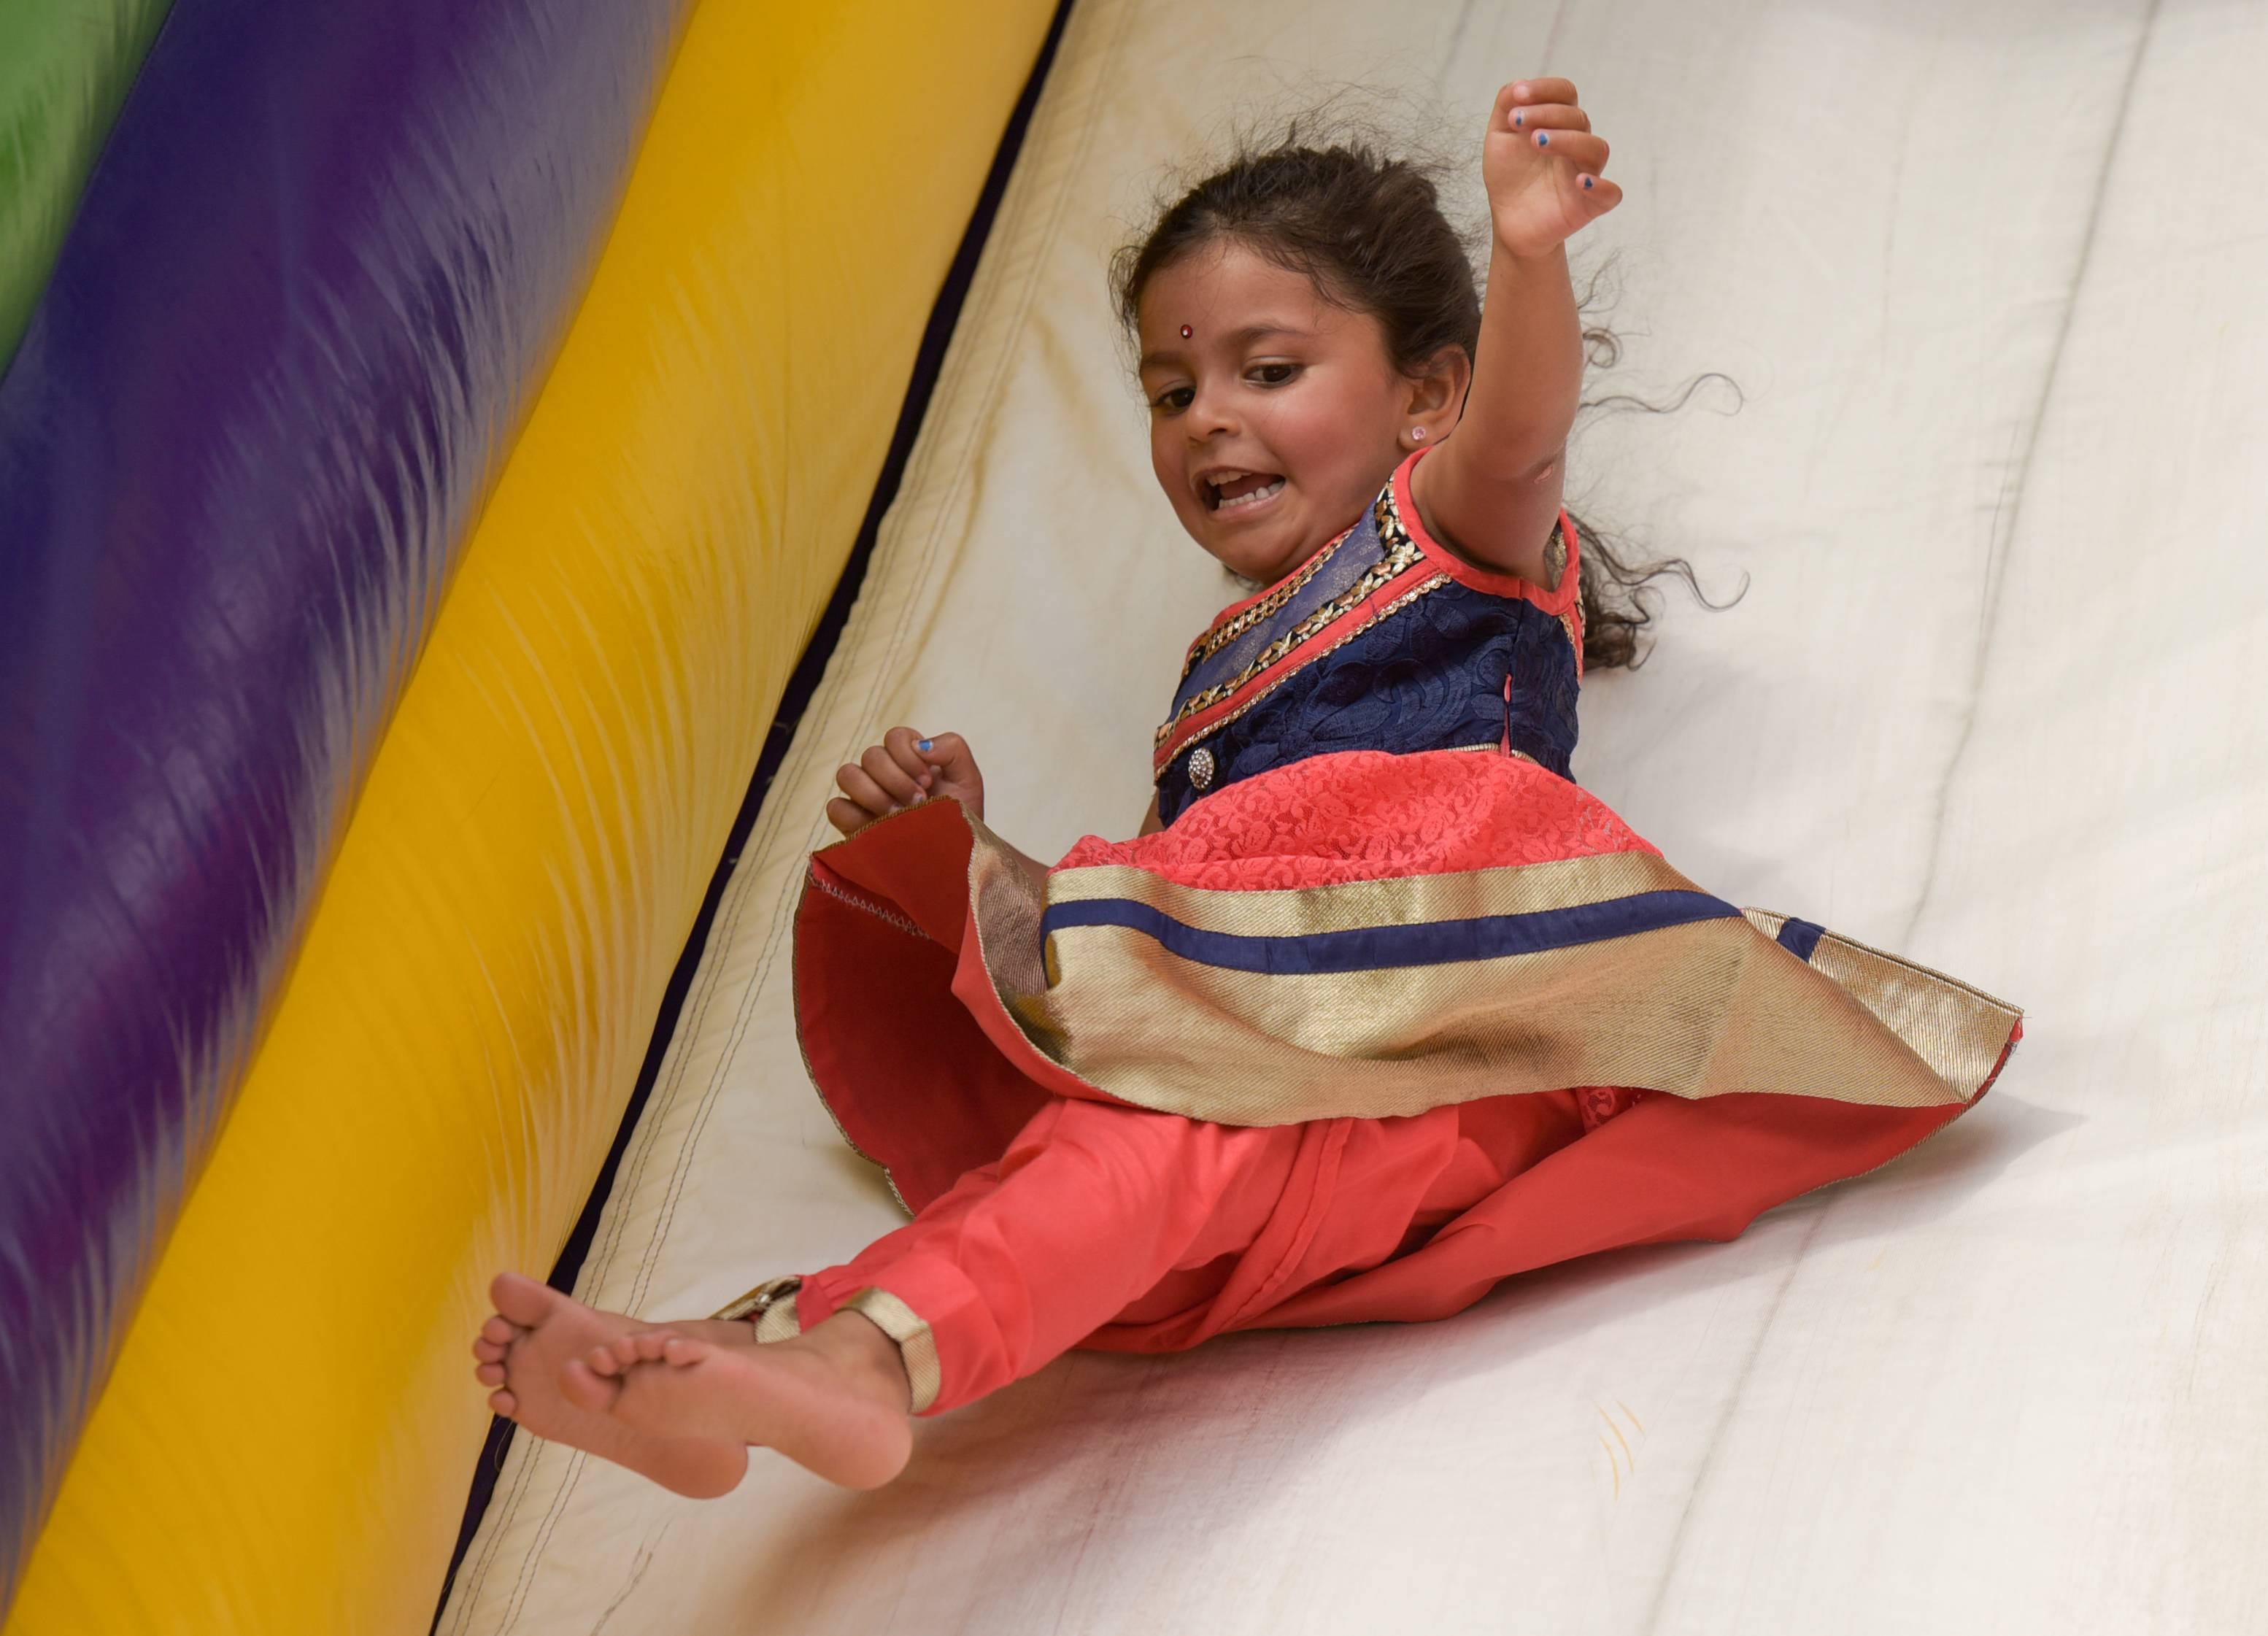 Aaradhya Bhagat, 3, of Naperville enjoys a fun slide Sunday during the third annual India Day Festival in Naperville.